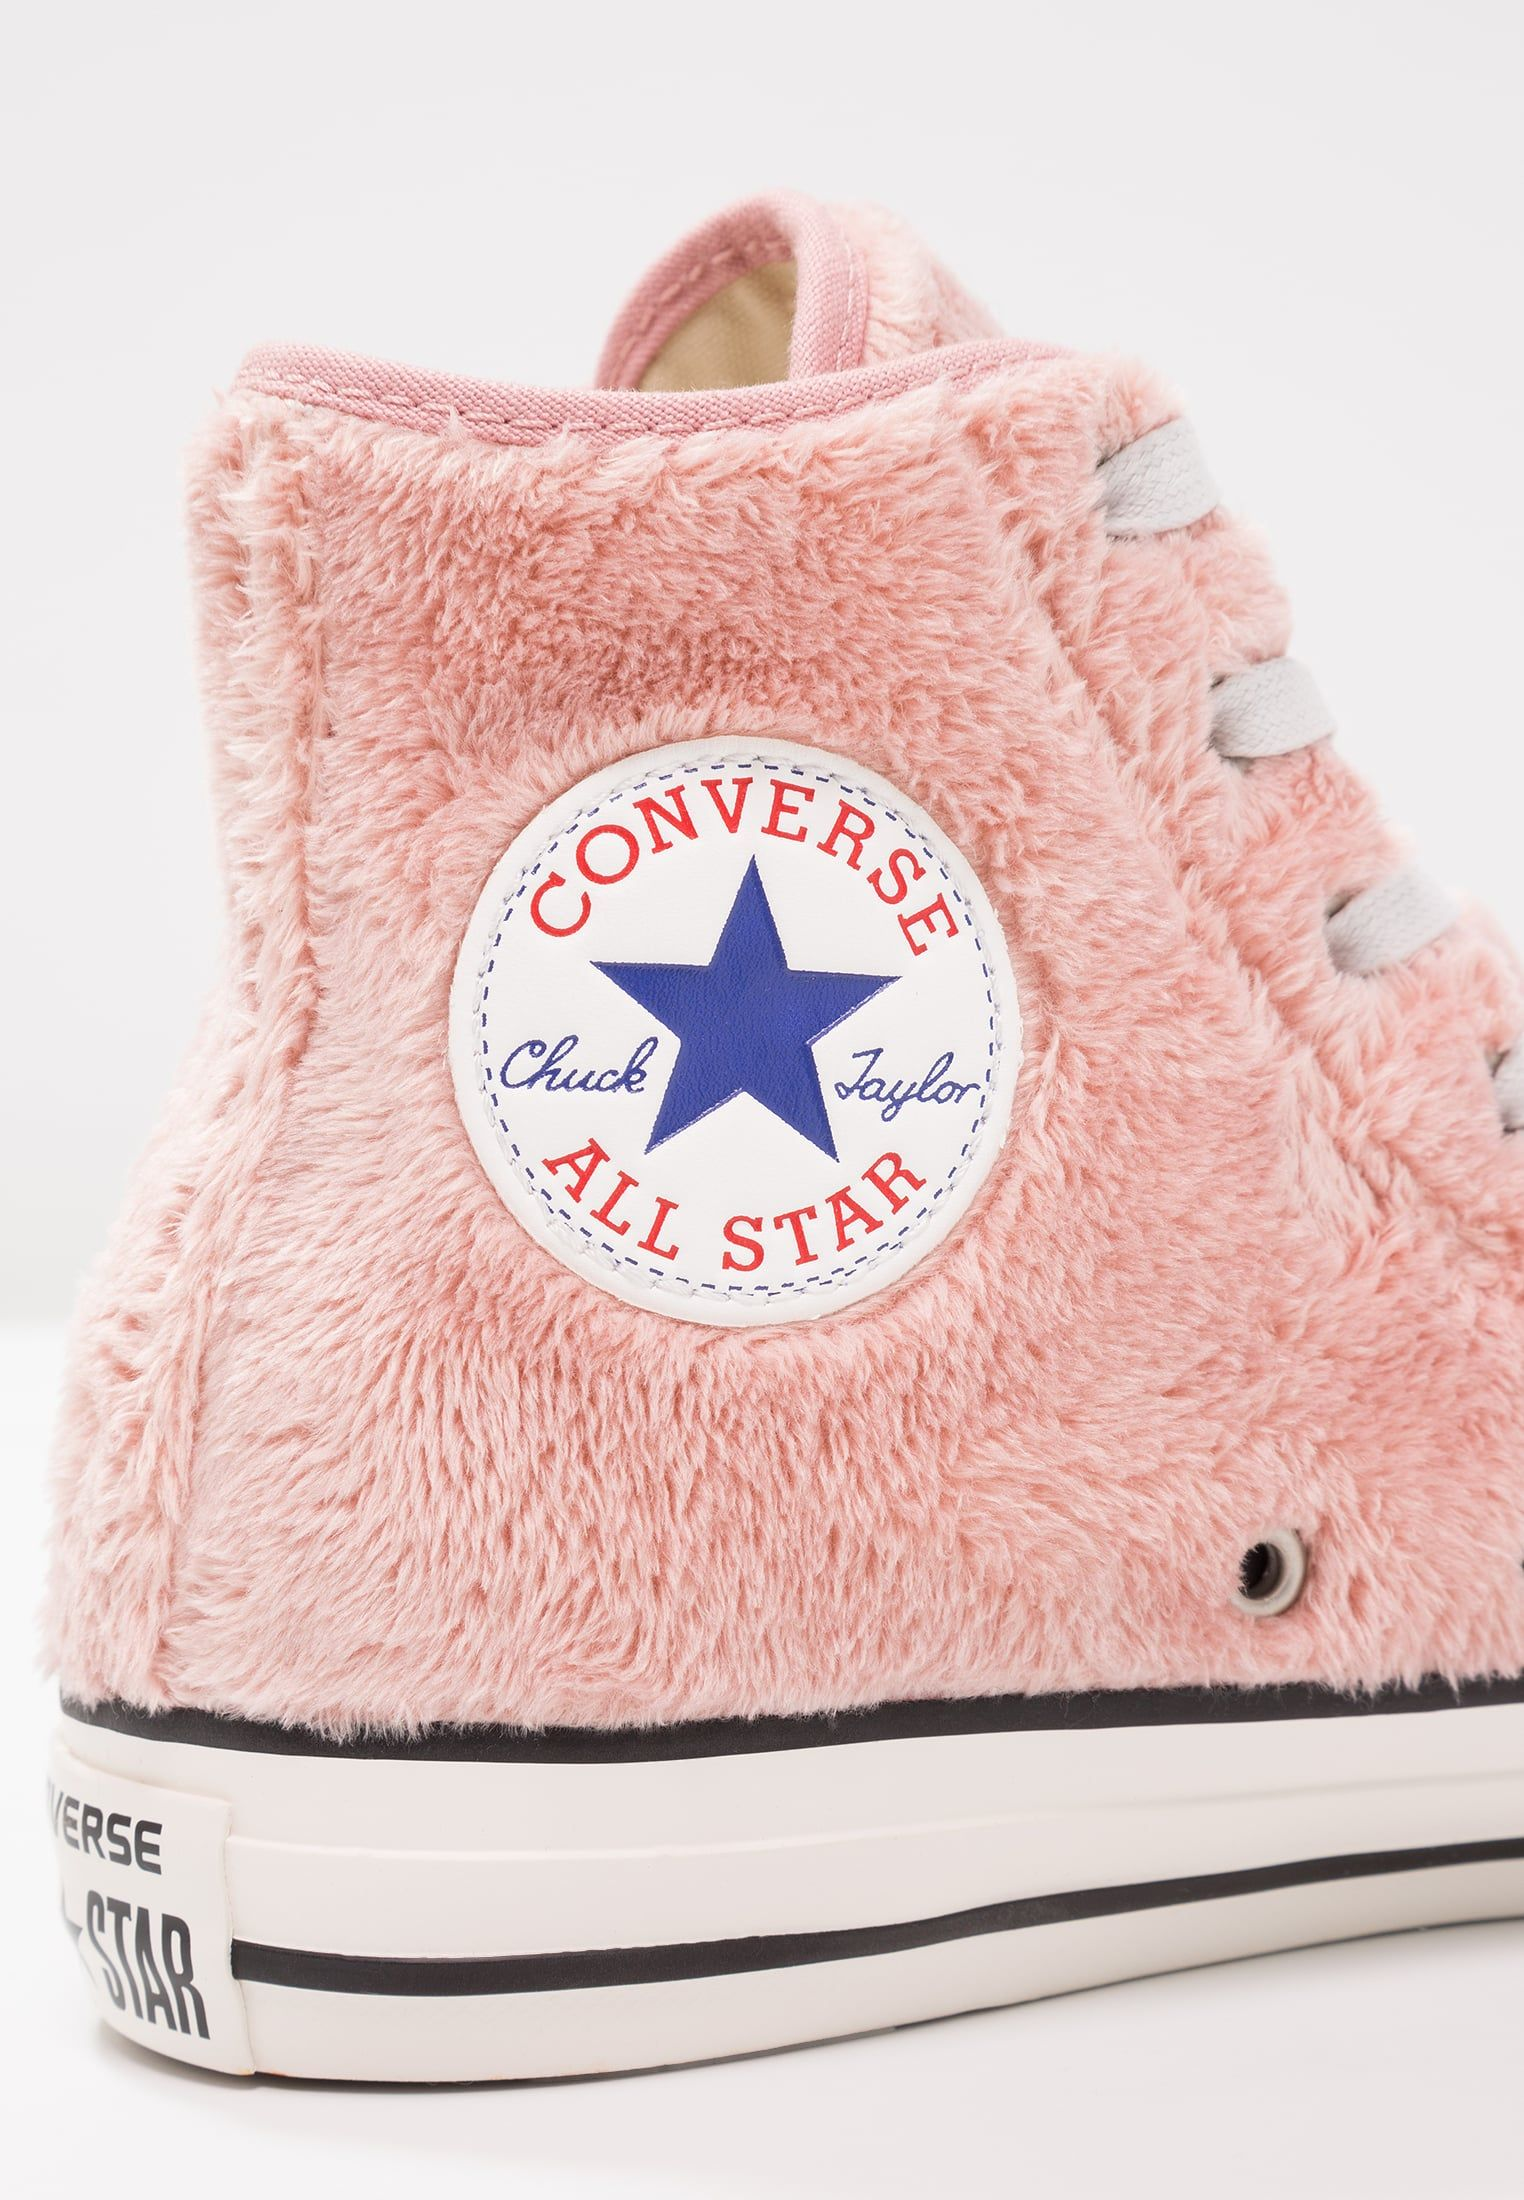 4859a49067d528 Sneakers women - Converse ALL STAR HI FAUX FUR pink